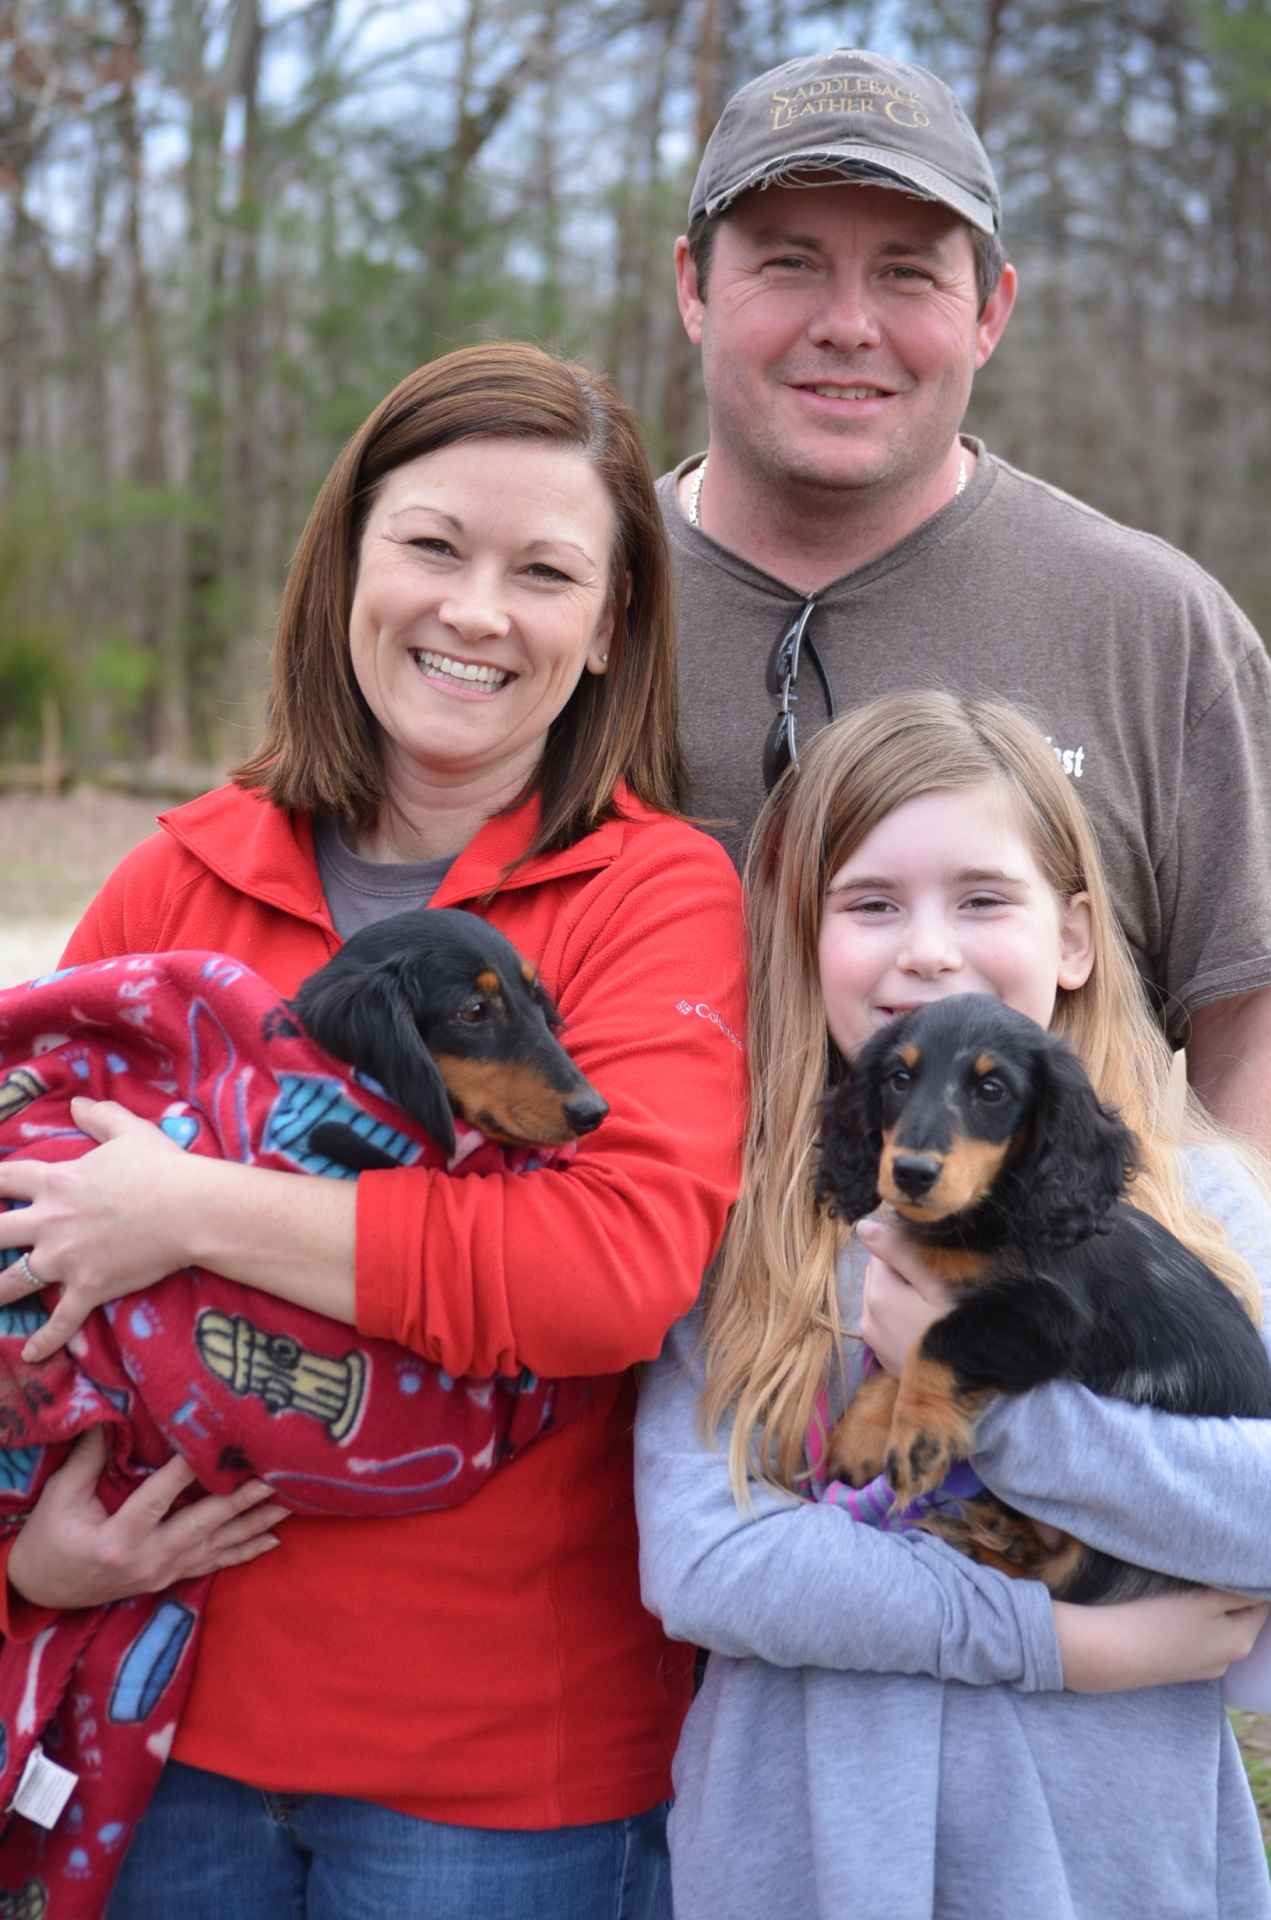 Chad, Dana and Ali going home with Sugar & Cooper